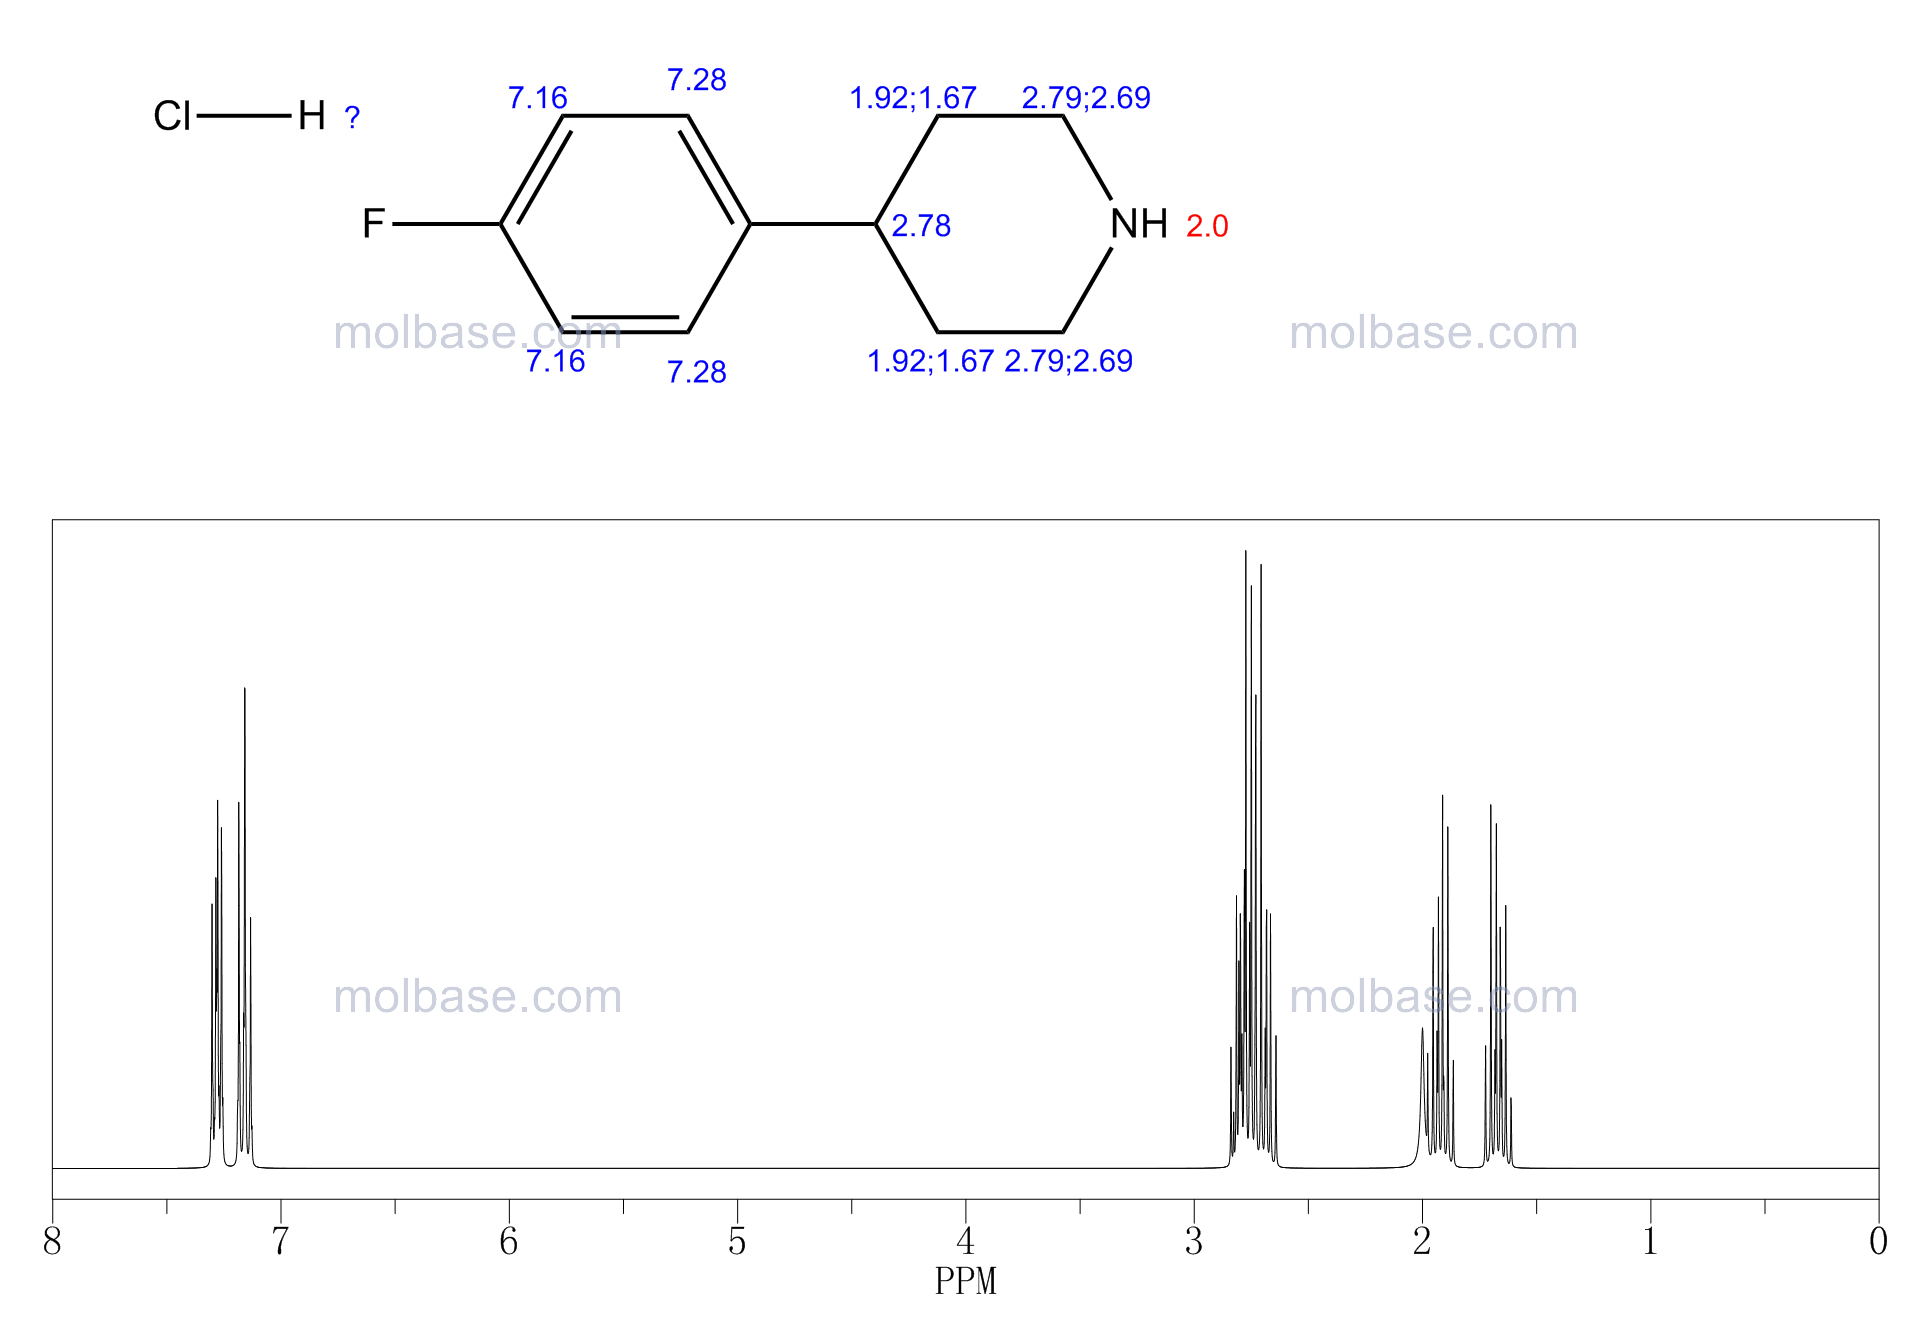 4-(4-Fluorophenyl)piperidine hydrochloride NMR spectra analysis, Chemical CAS NO. 6716-98-9 NMR spectral analysis, 4-(4-Fluorophenyl)piperidine hydrochloride C-NMR spectrum